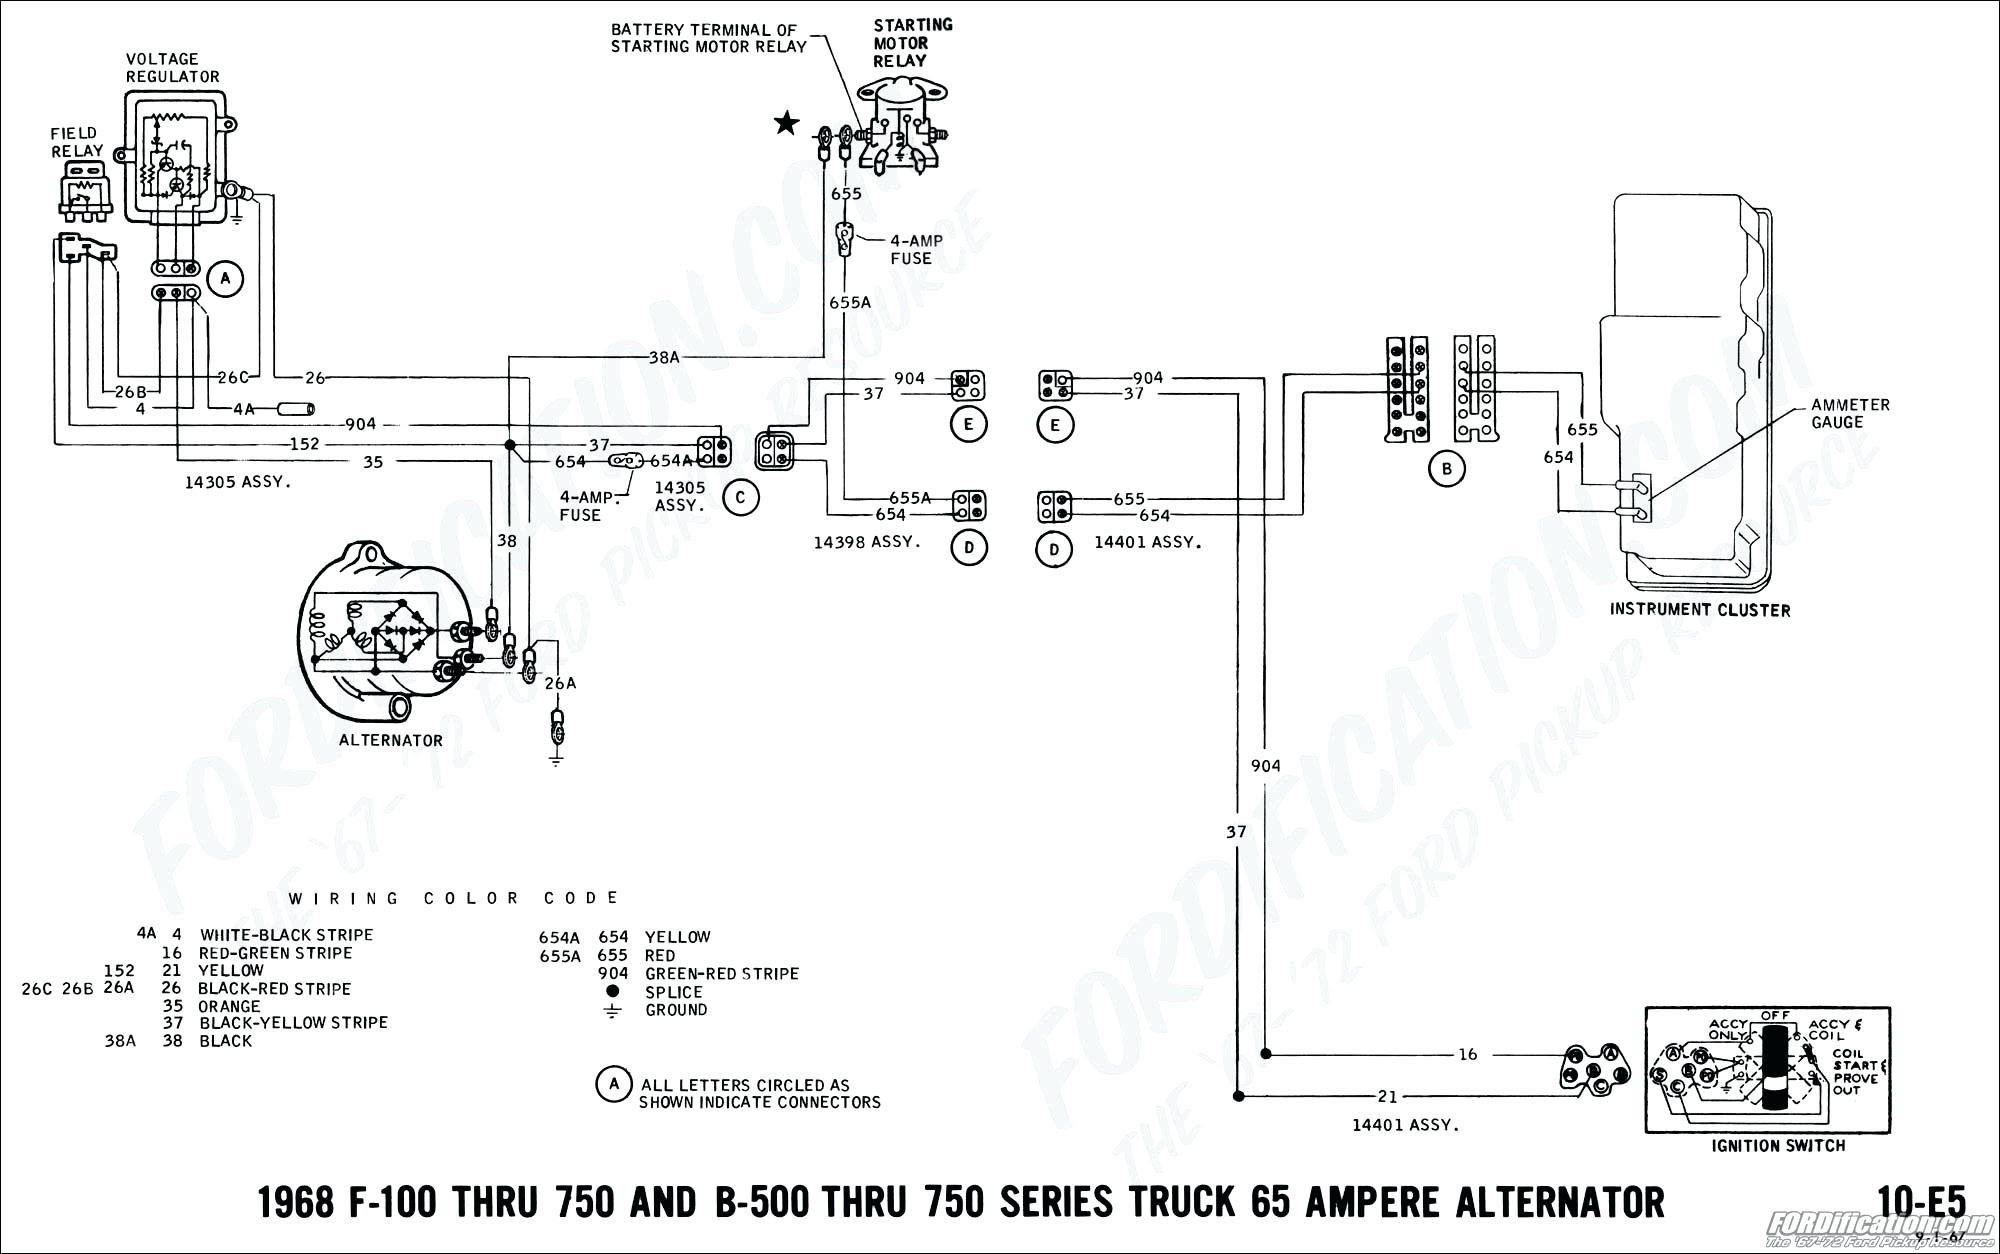 External Voltage Regulator Wiring Diagram Chrysler